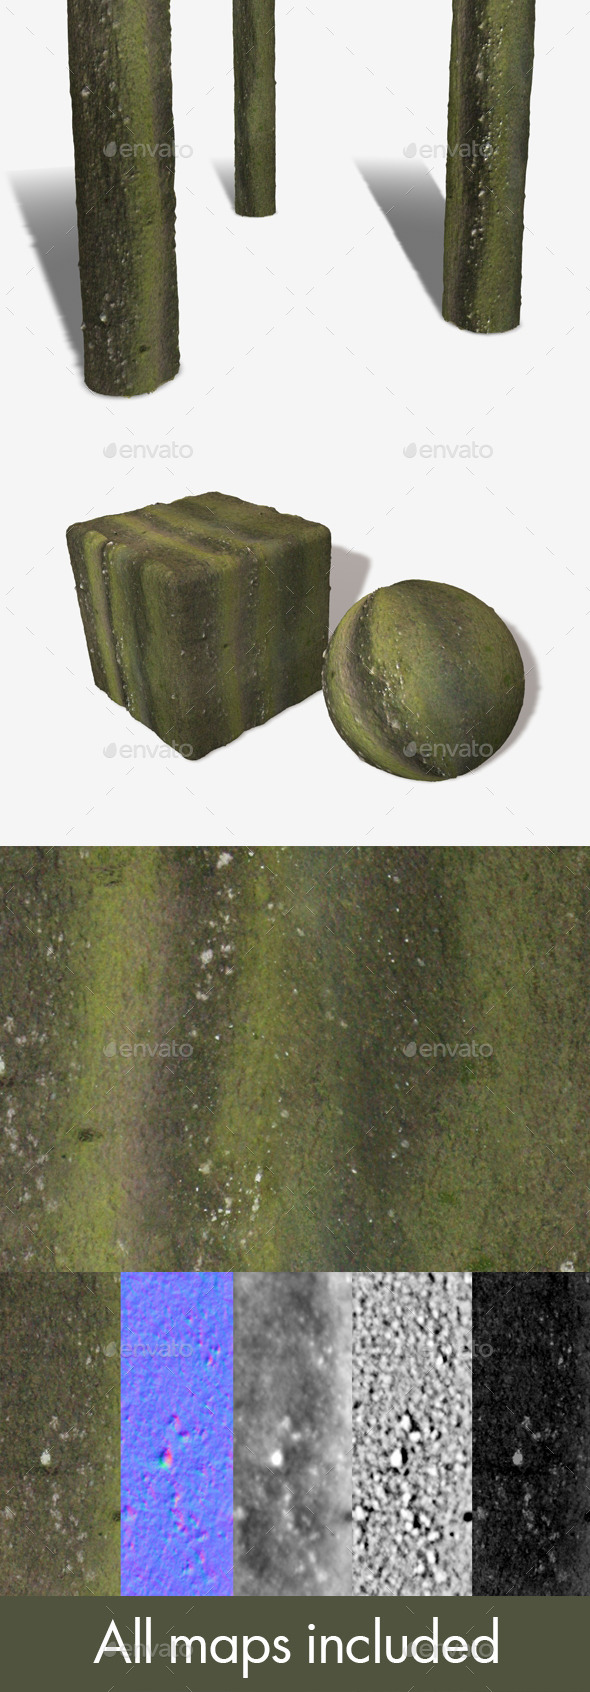 3DOcean Green Bark Seamless Texture 12123813